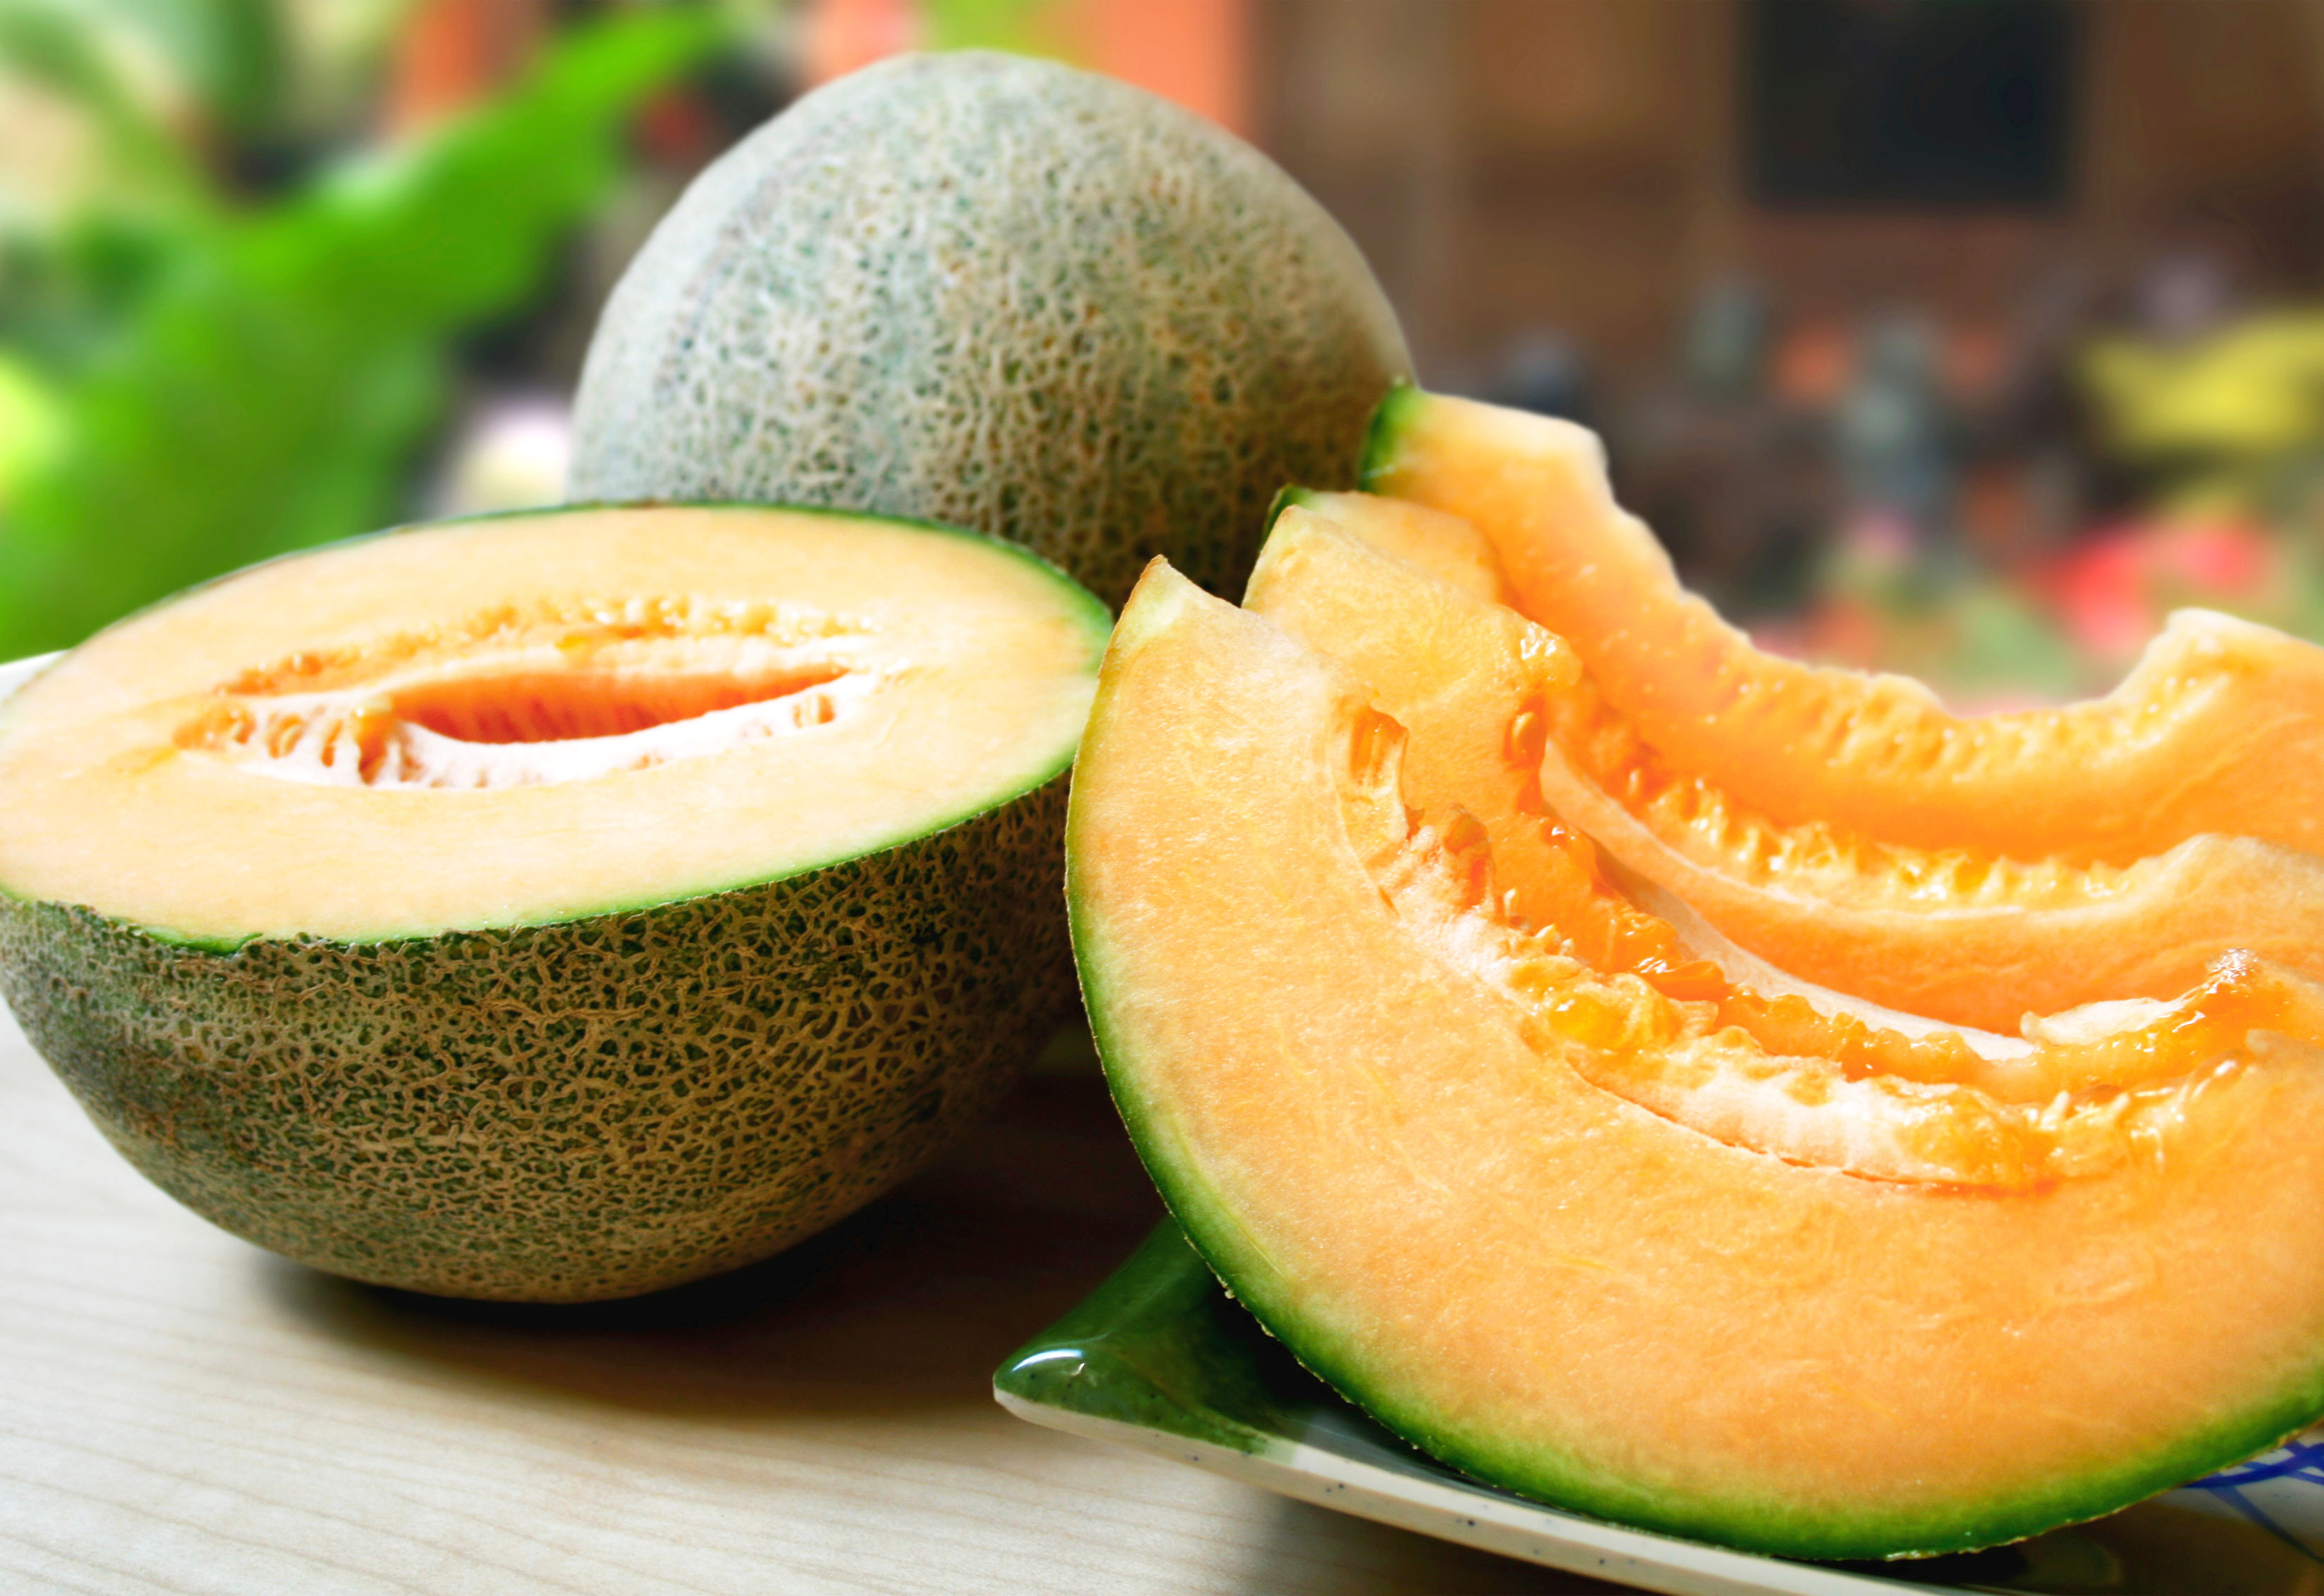 Cantaloupes can be enjoyed by diabetes sufferers